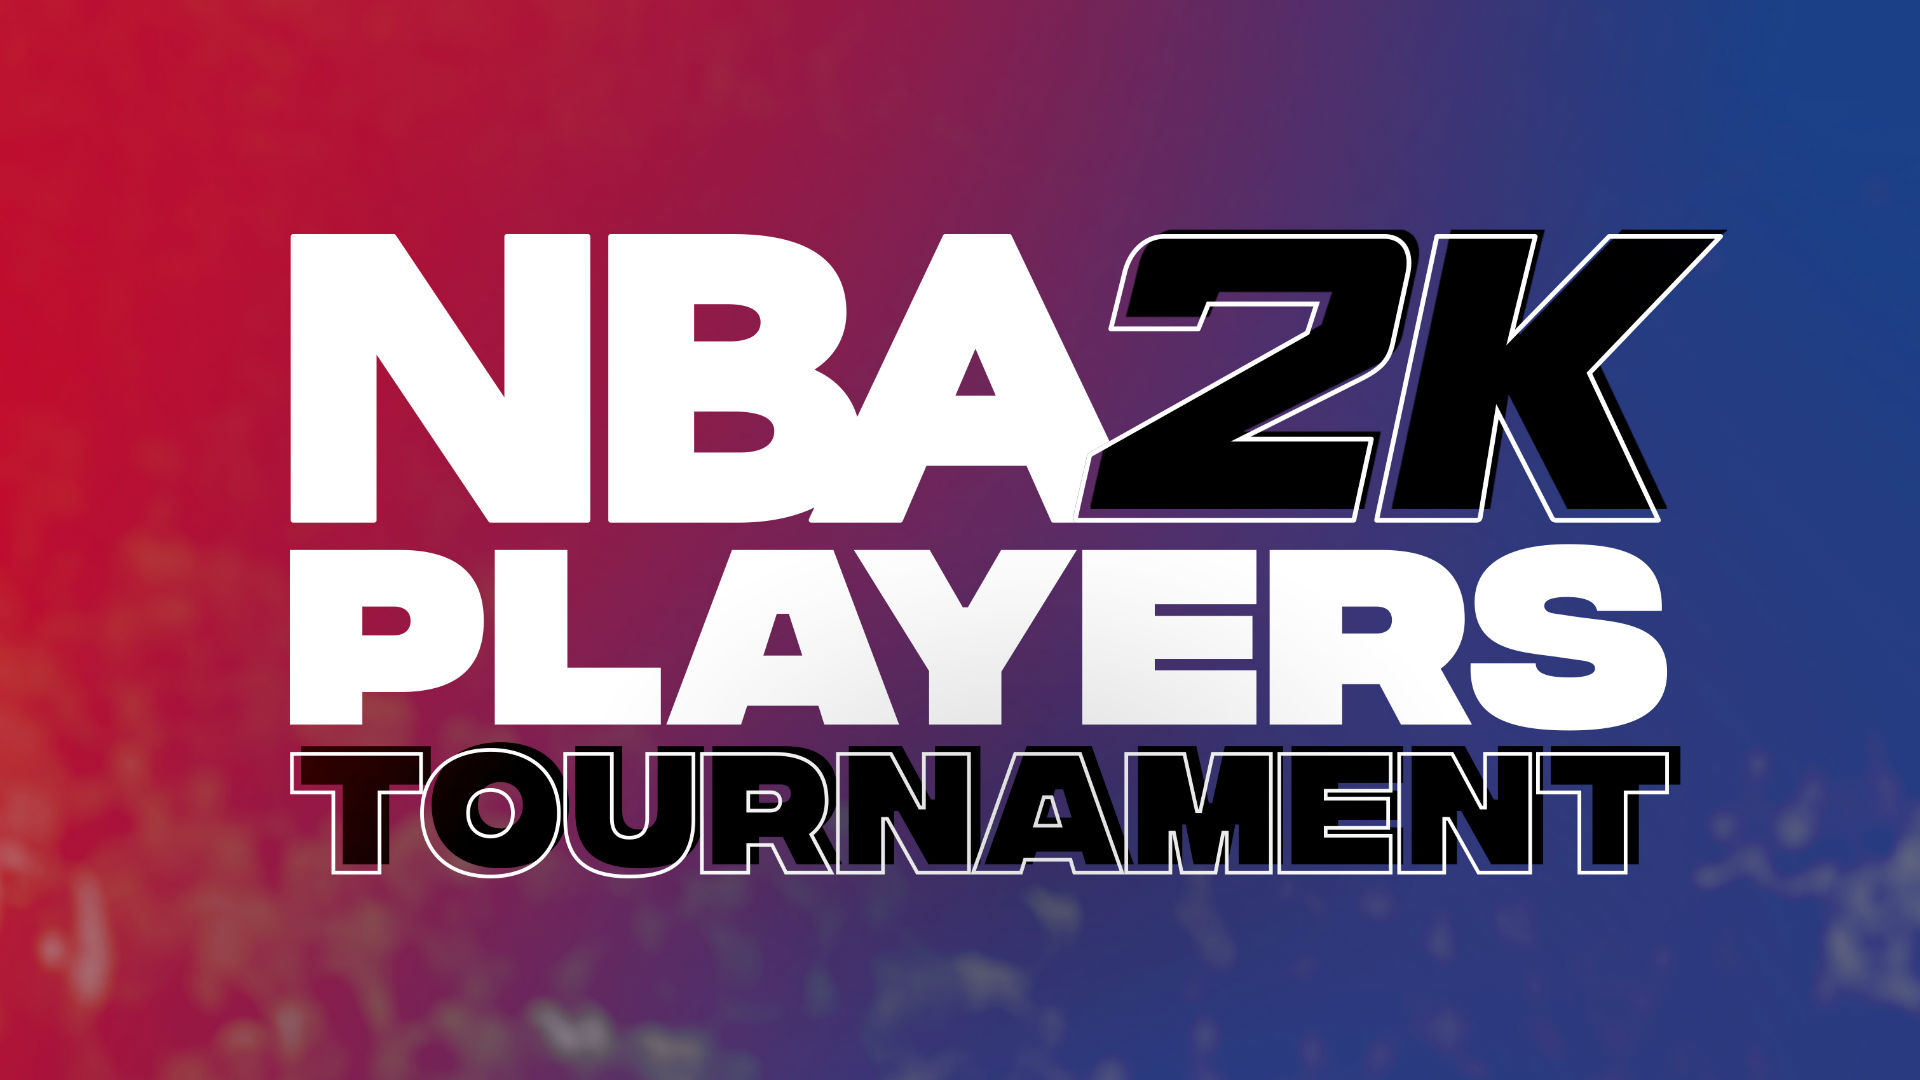 'NBA 2K' Players Tournament 2020: calendario completo de TV, soporte y lista de entradas para juegos en ESPN 30